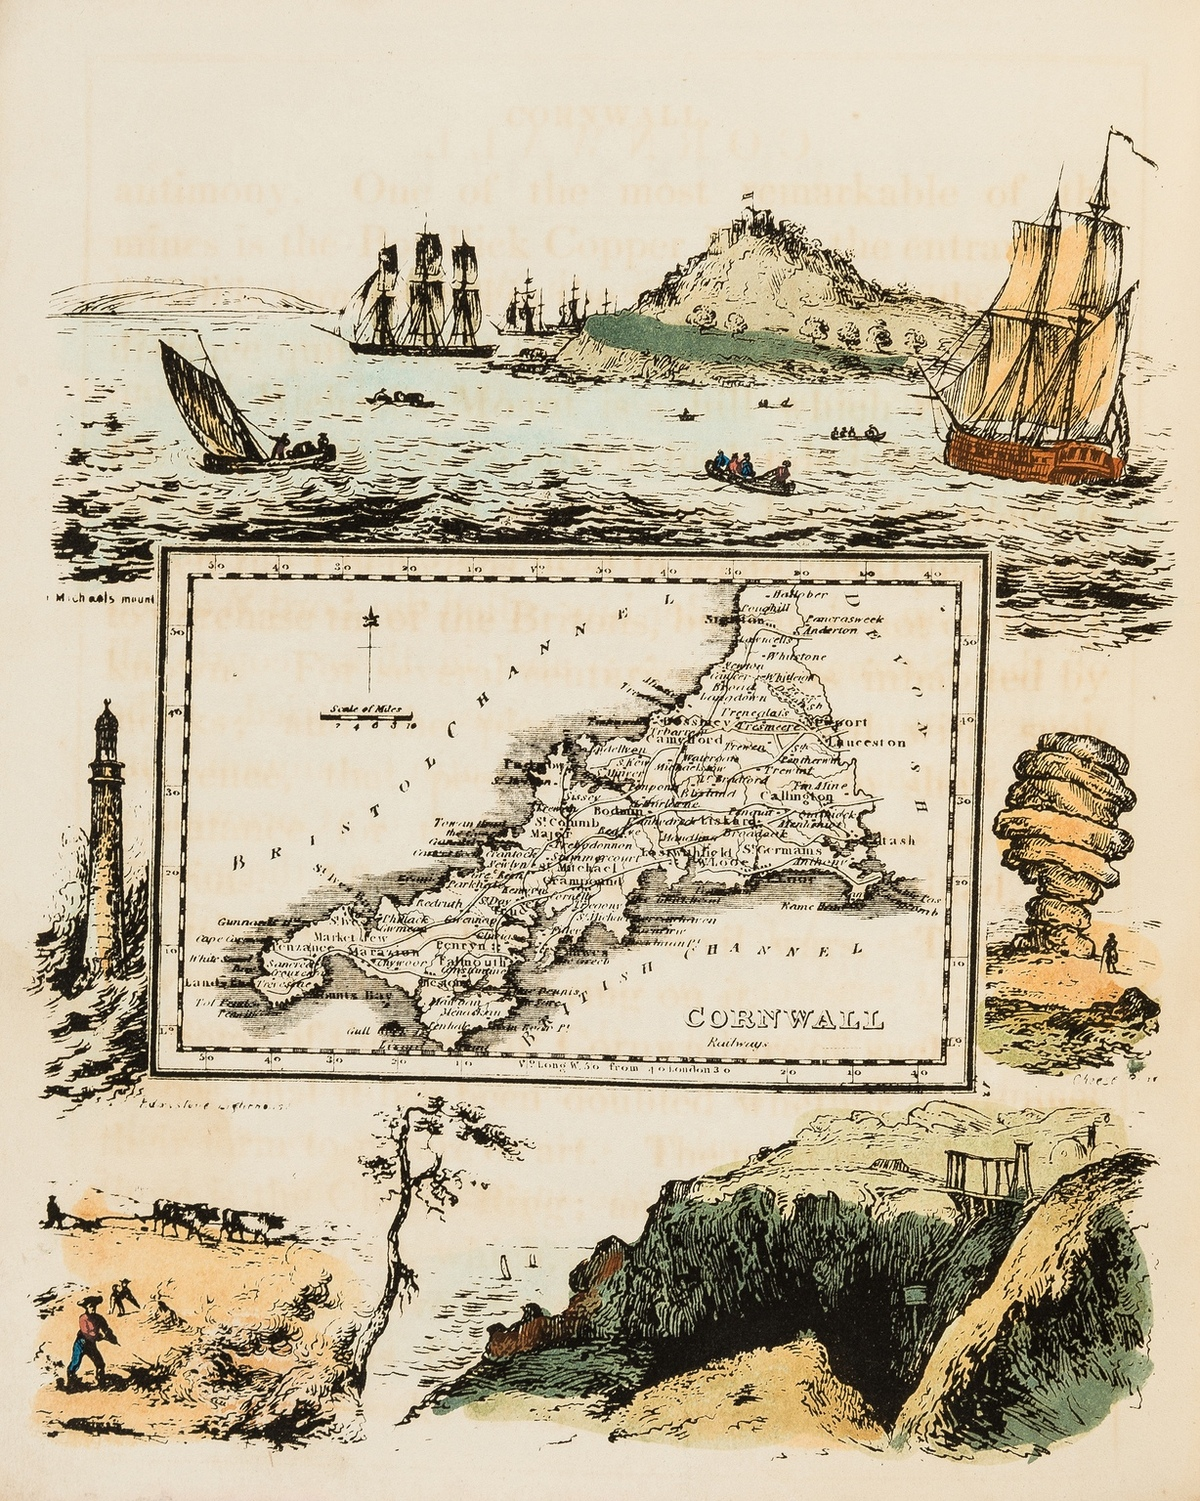 England.- Ramble (Reuben) Travels in the Western Counties of England, 1845.